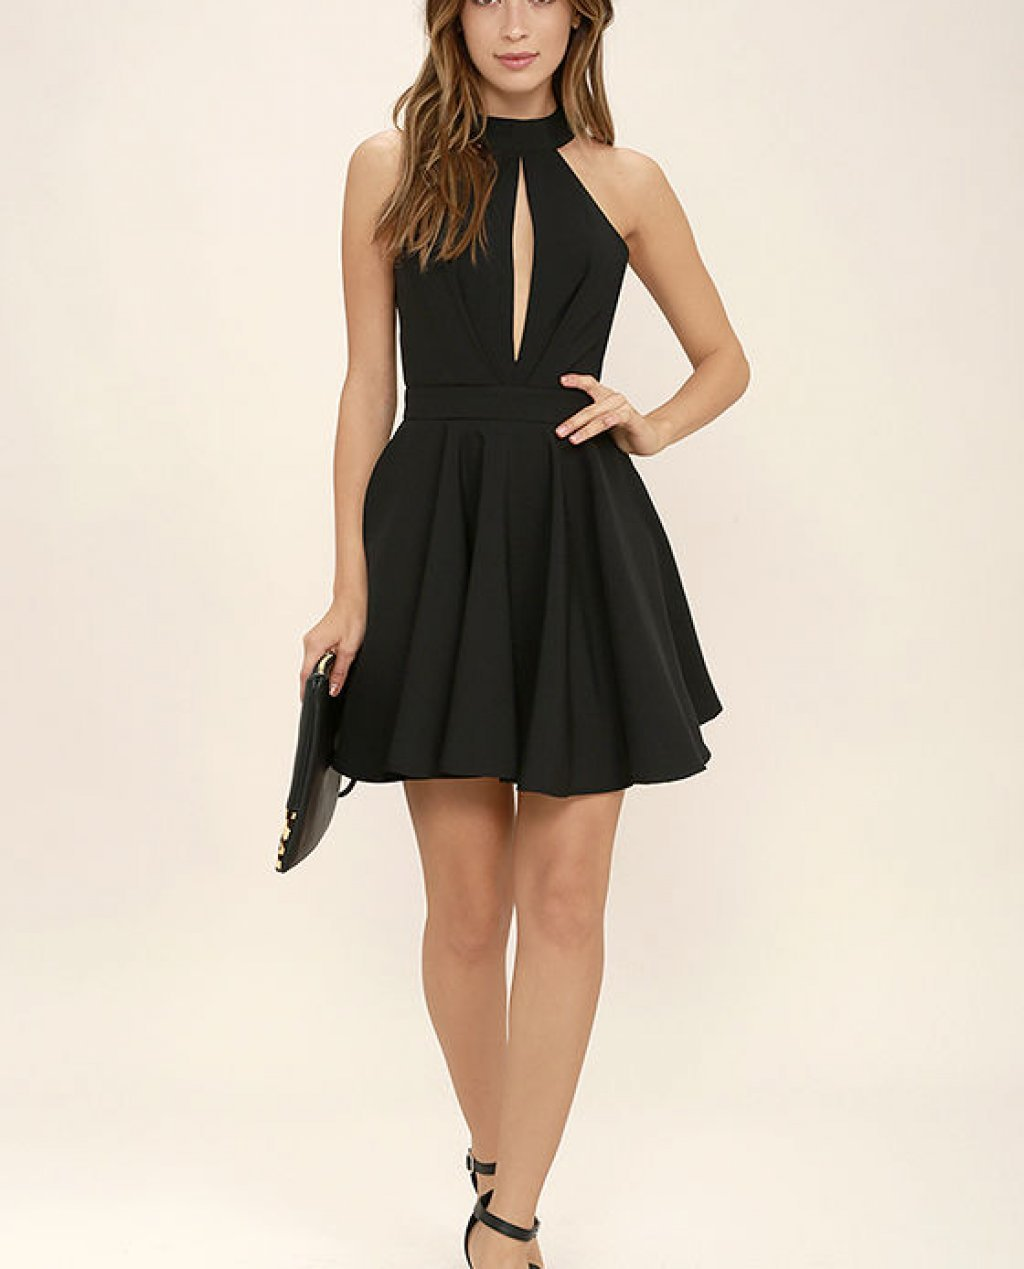 Smile Sweetly Black Skater Dress